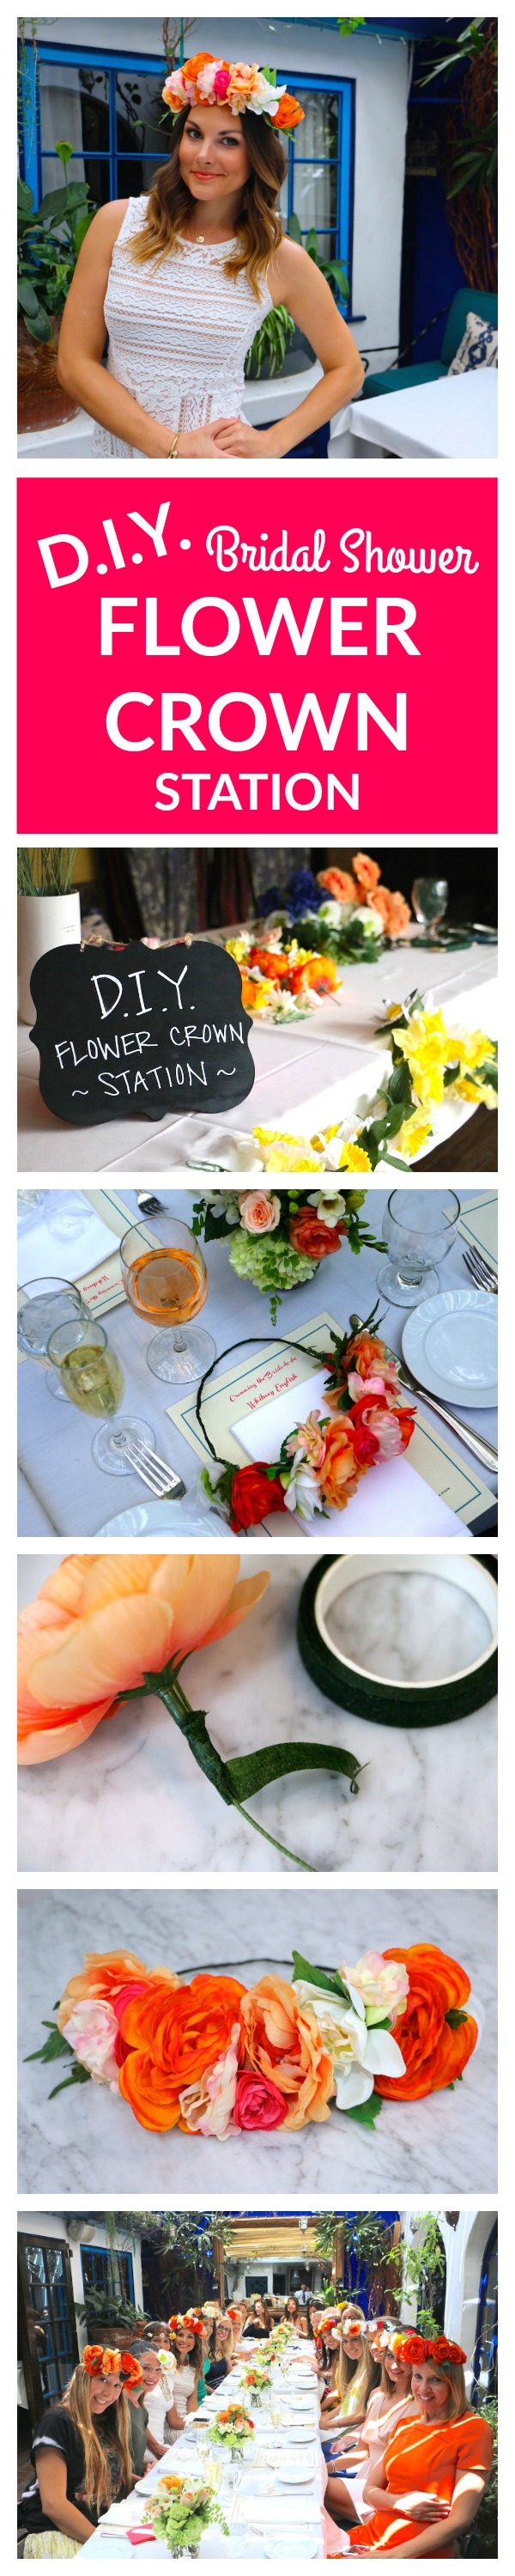 flower crown making station for bridal showers